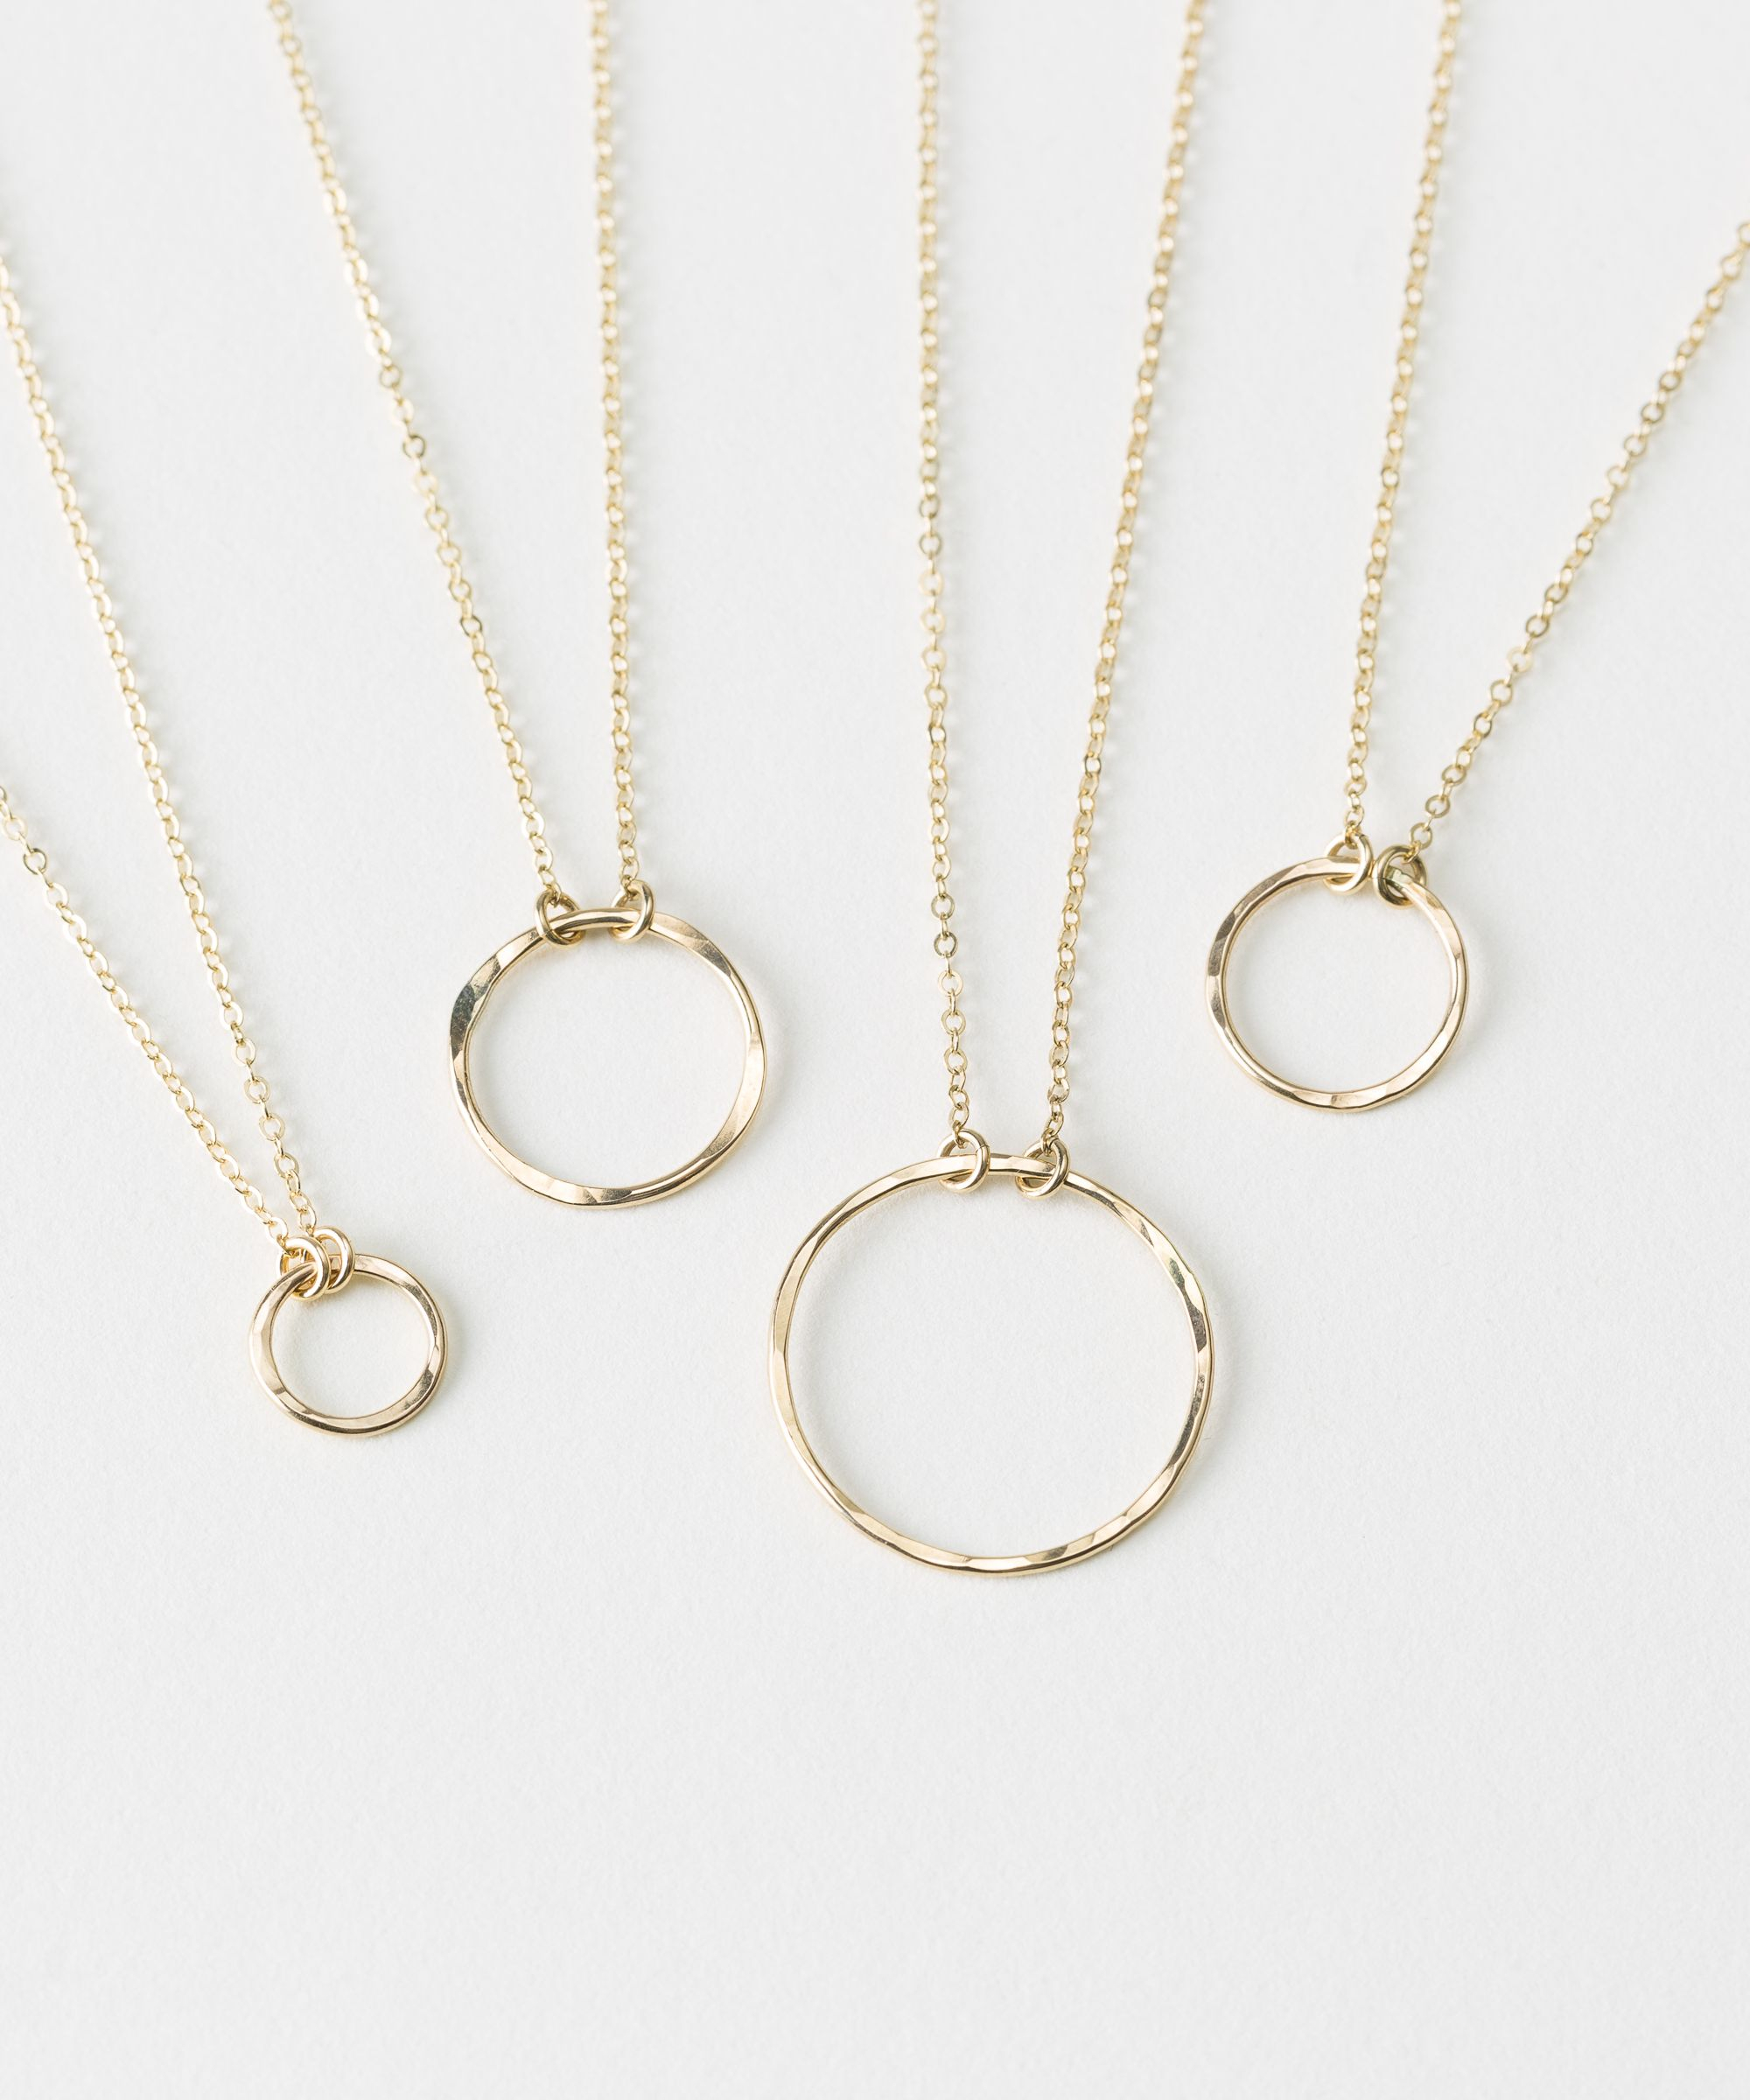 Selene Necklace In 2019 | Necklaces | Circle Necklace, Simple With 2019 Circle Of Sparkle Necklaces (View 10 of 25)